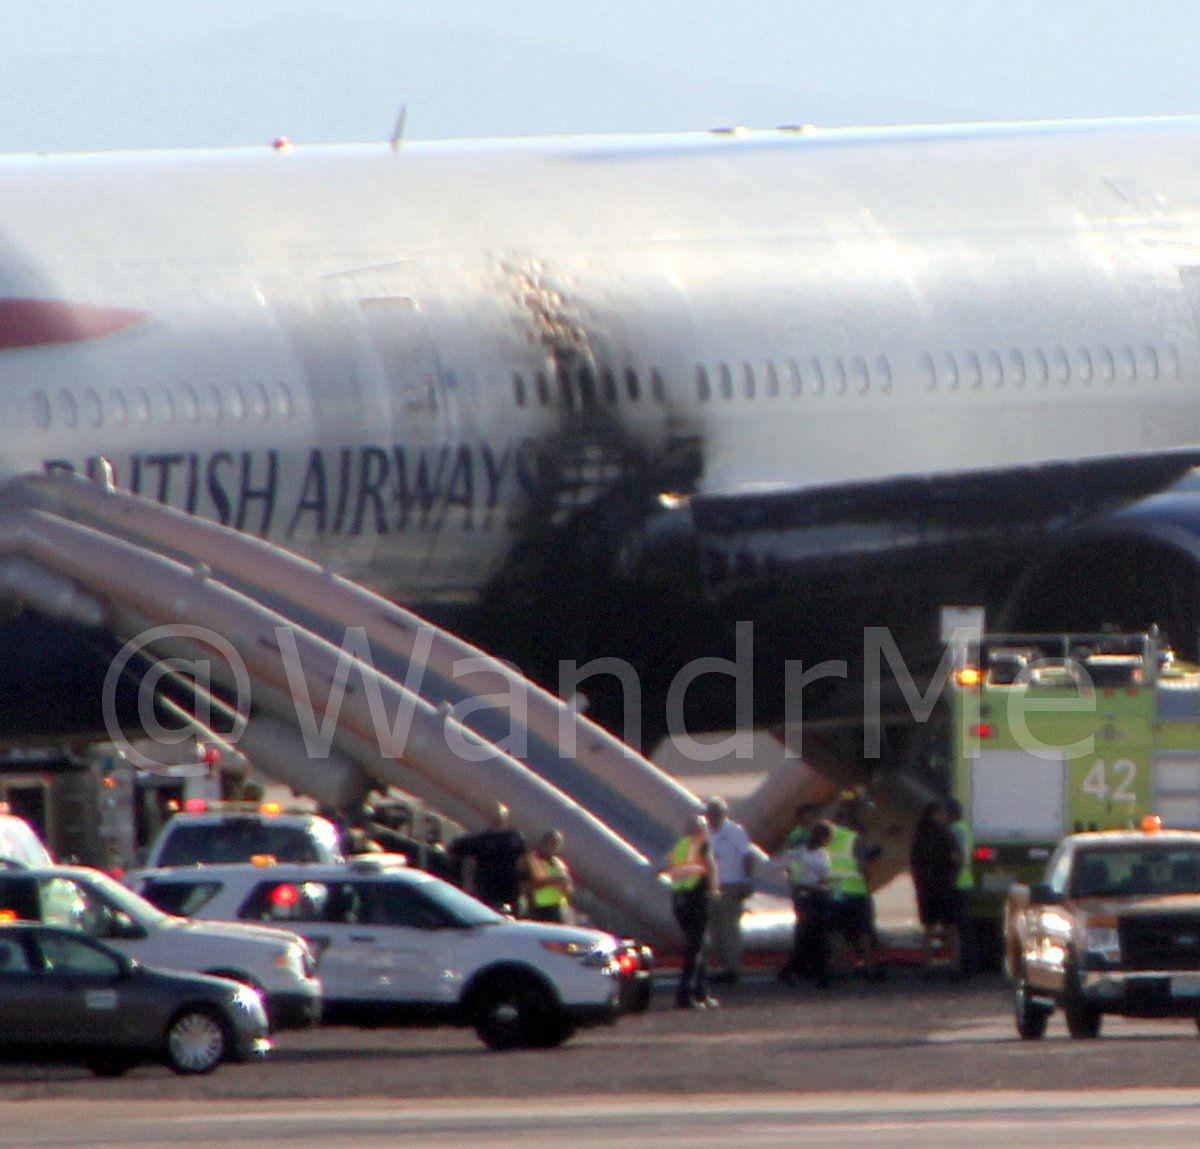 More/better photos of #BA2776 at @LASairport this afternoon. #AvGeek #PaxEx http://t.co/riuSdpZCqF